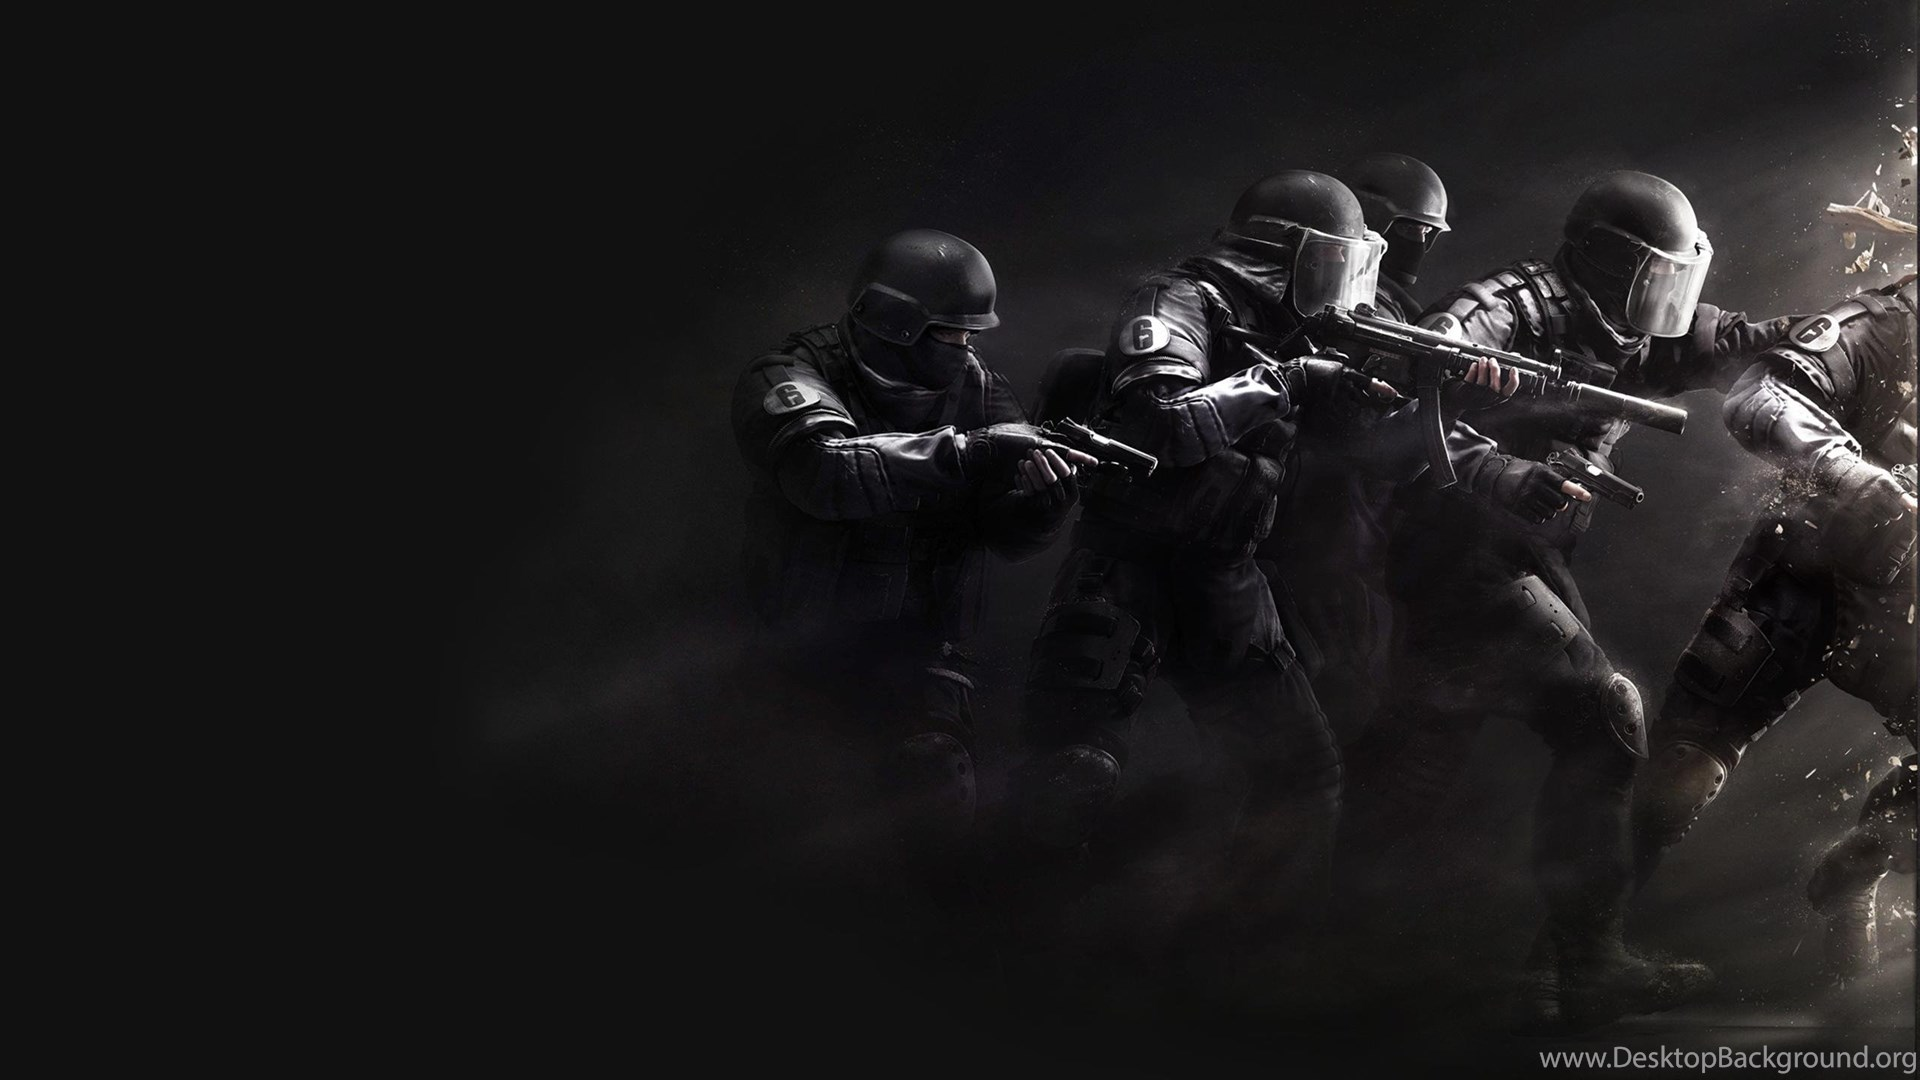 Rainbow Six Siege Wallpaper Hd: Rainbow Six: Siege Dual Screen Wallpapers Album On Imgur